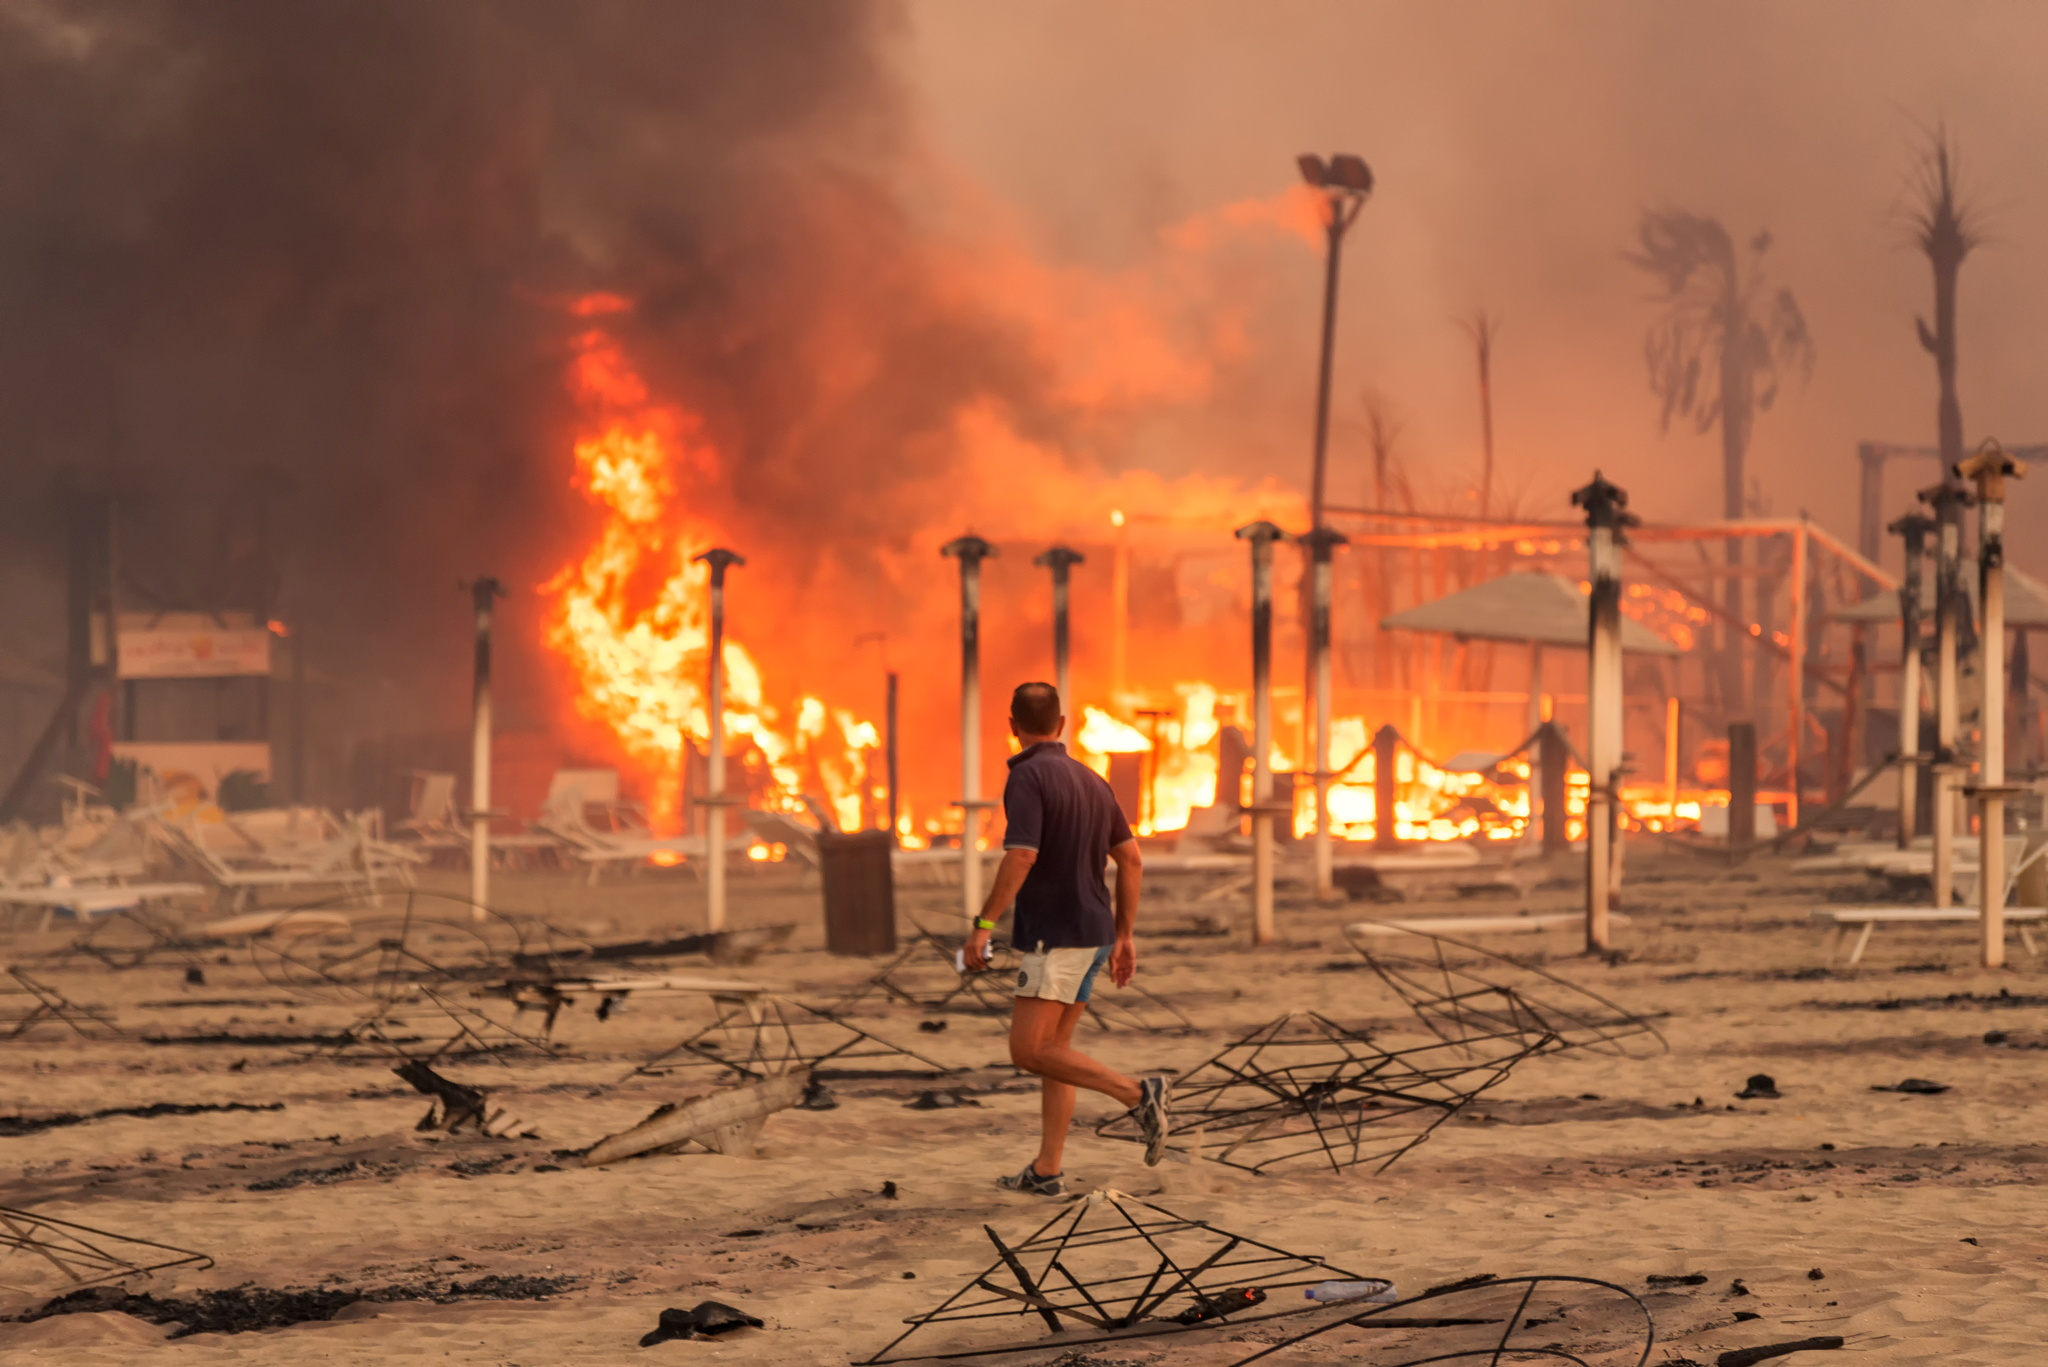 A man walks in front of a fire at Le Capannine beach in Catania, Sicily, Italy, July 30, 2021, in this photo obtained from social media on July 31, 2021.  Roberto Viglianisi/via REUTERS